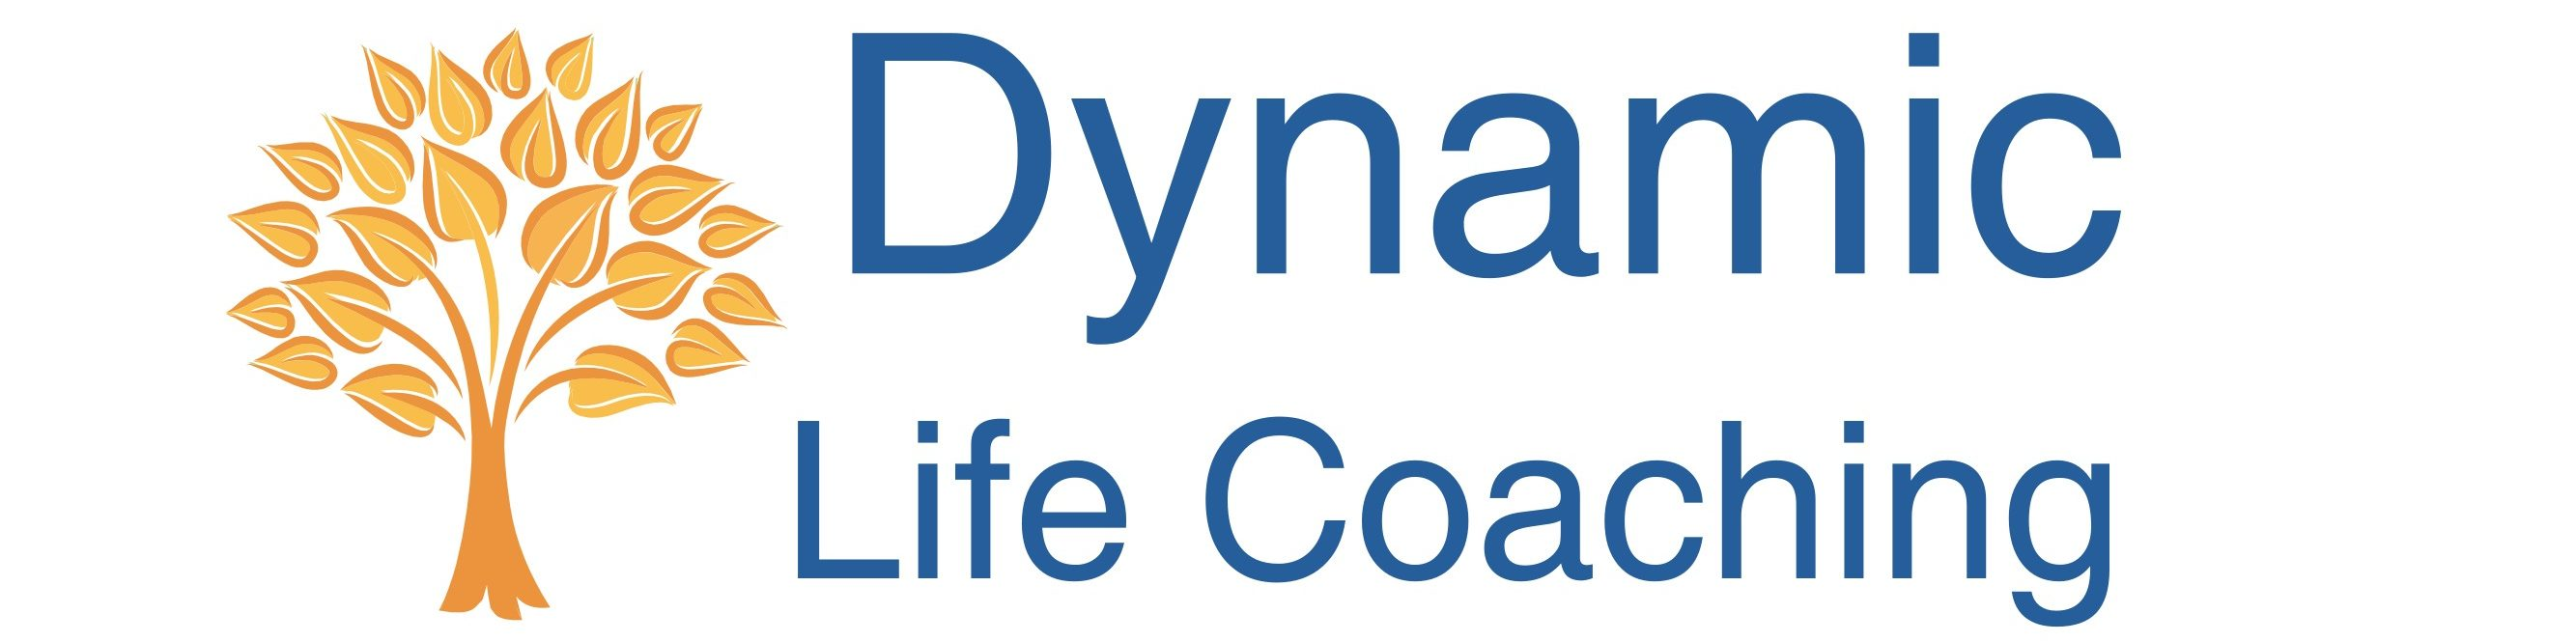 Dynamic Life Coaching